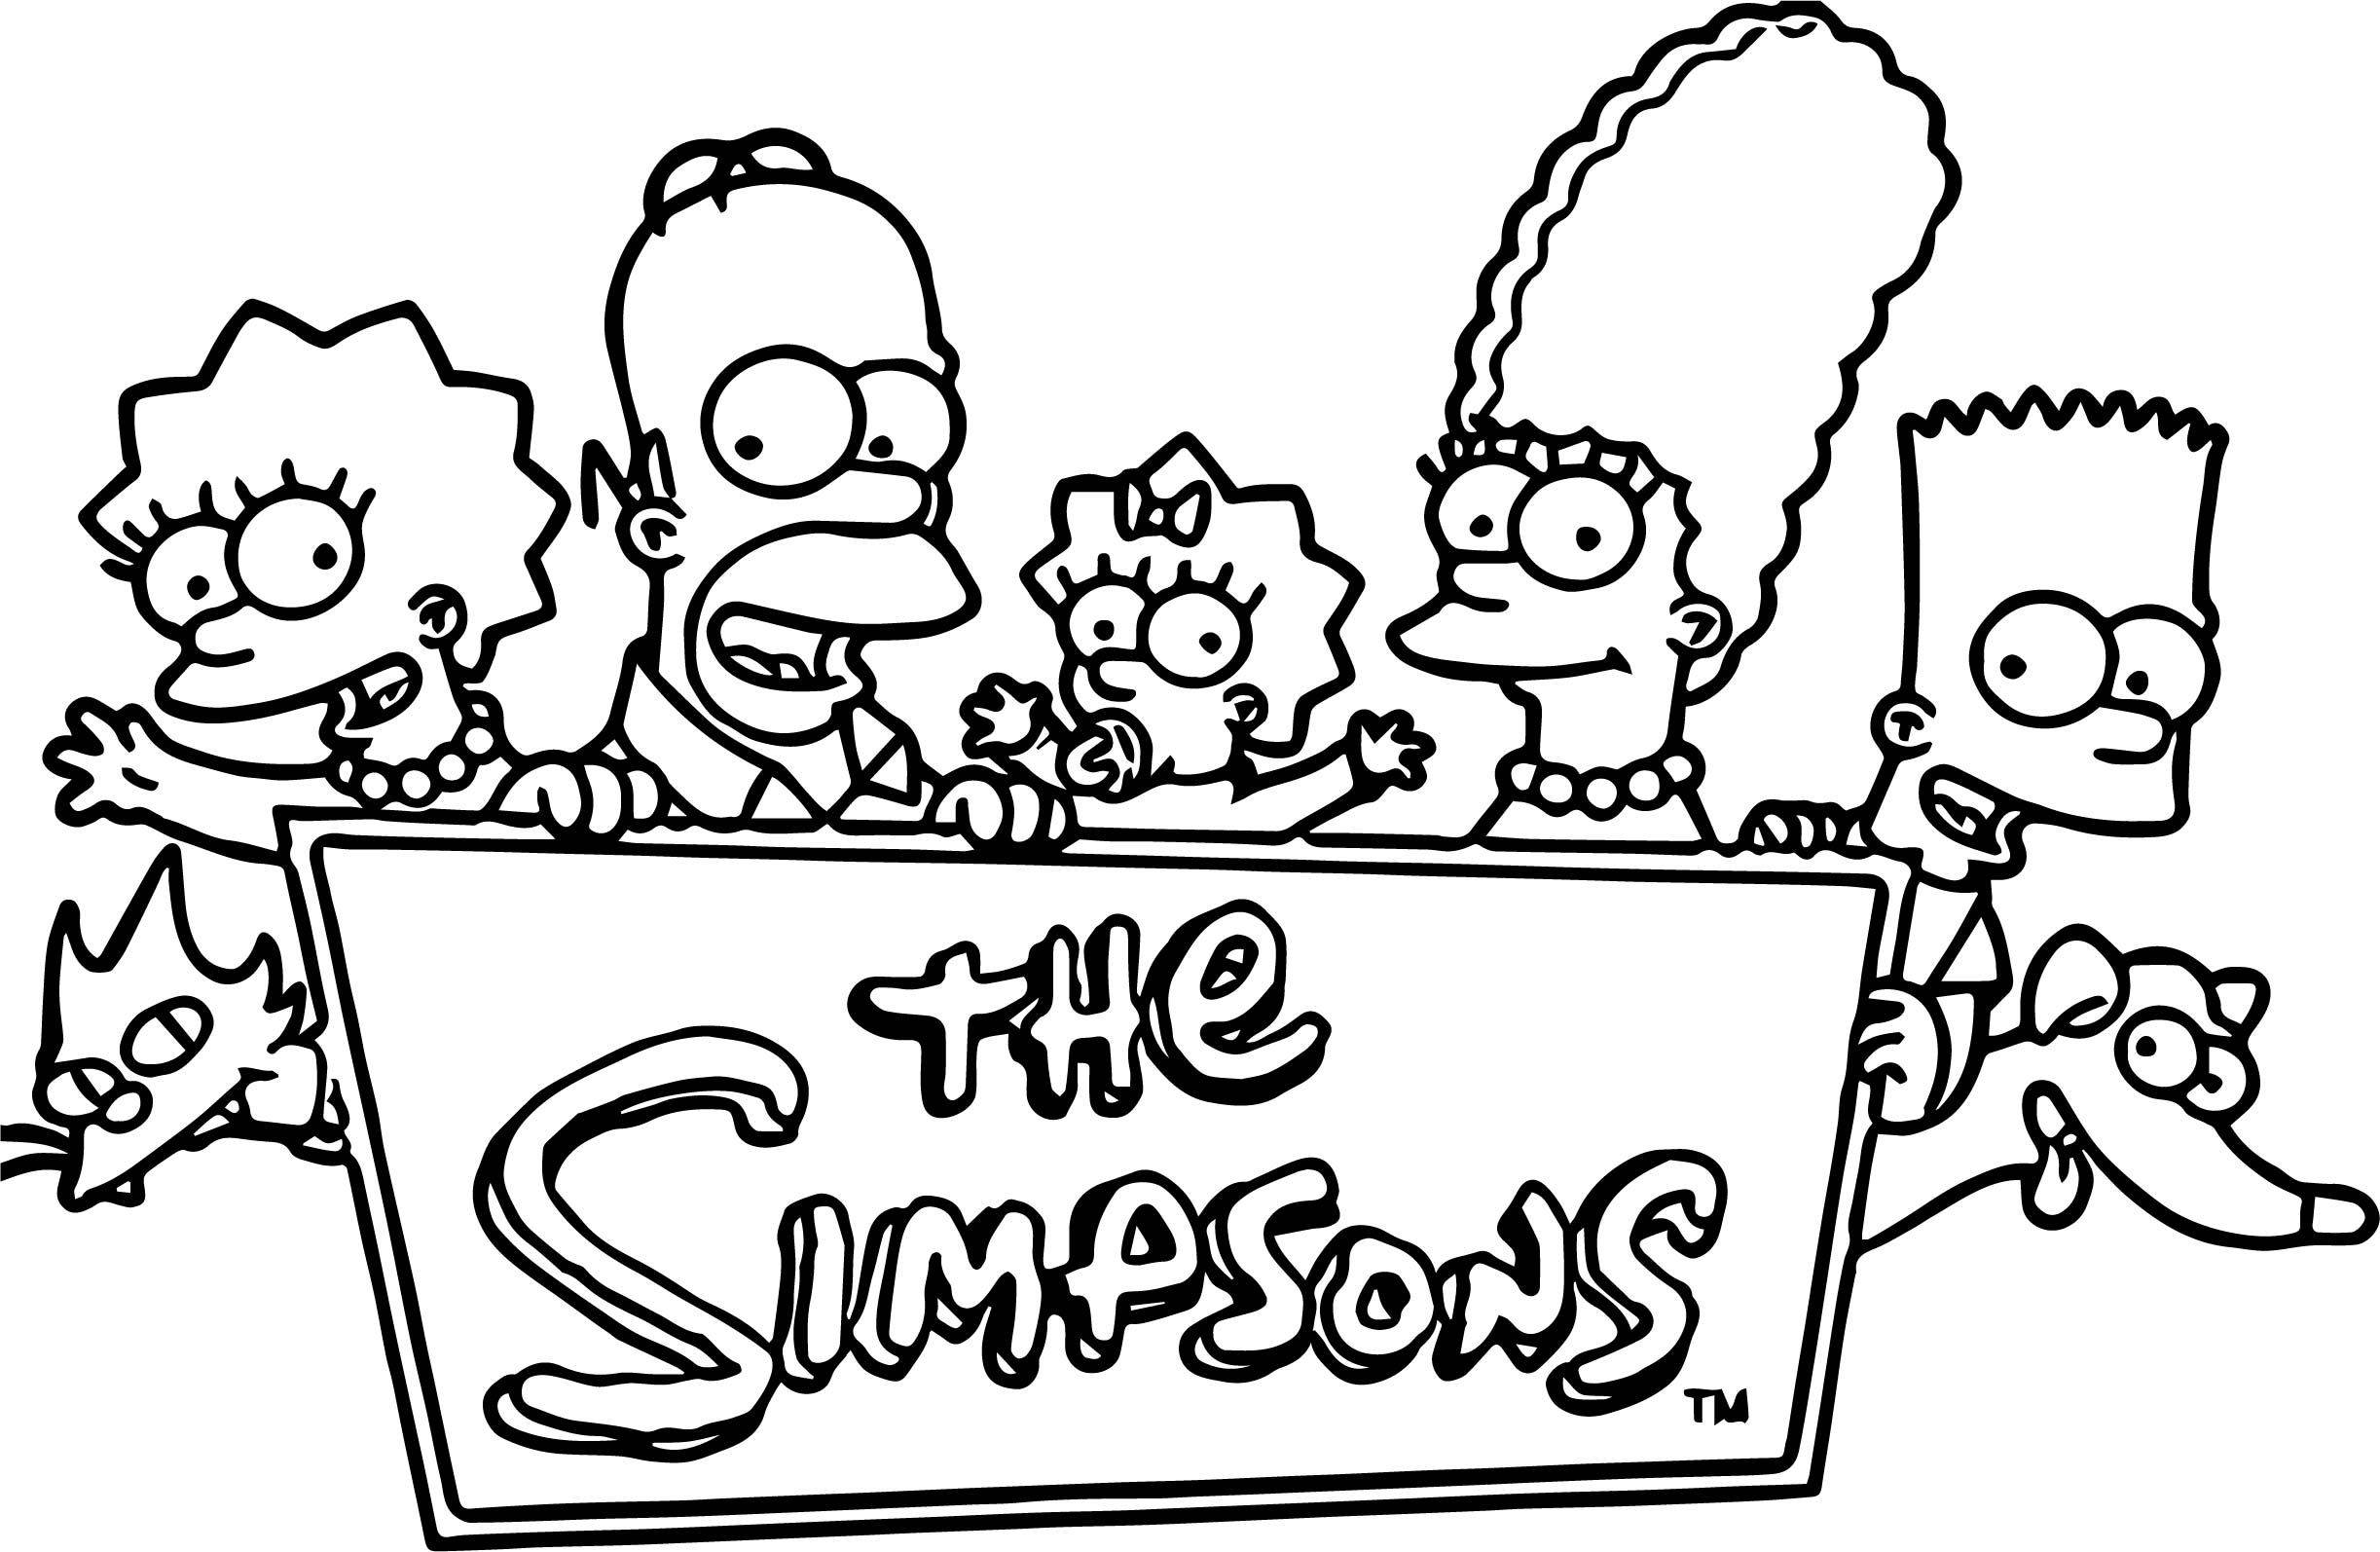 Cool Simpsons Family Logo Coloring Page Family Coloring Pages Coloring Pages Simpsons Drawings